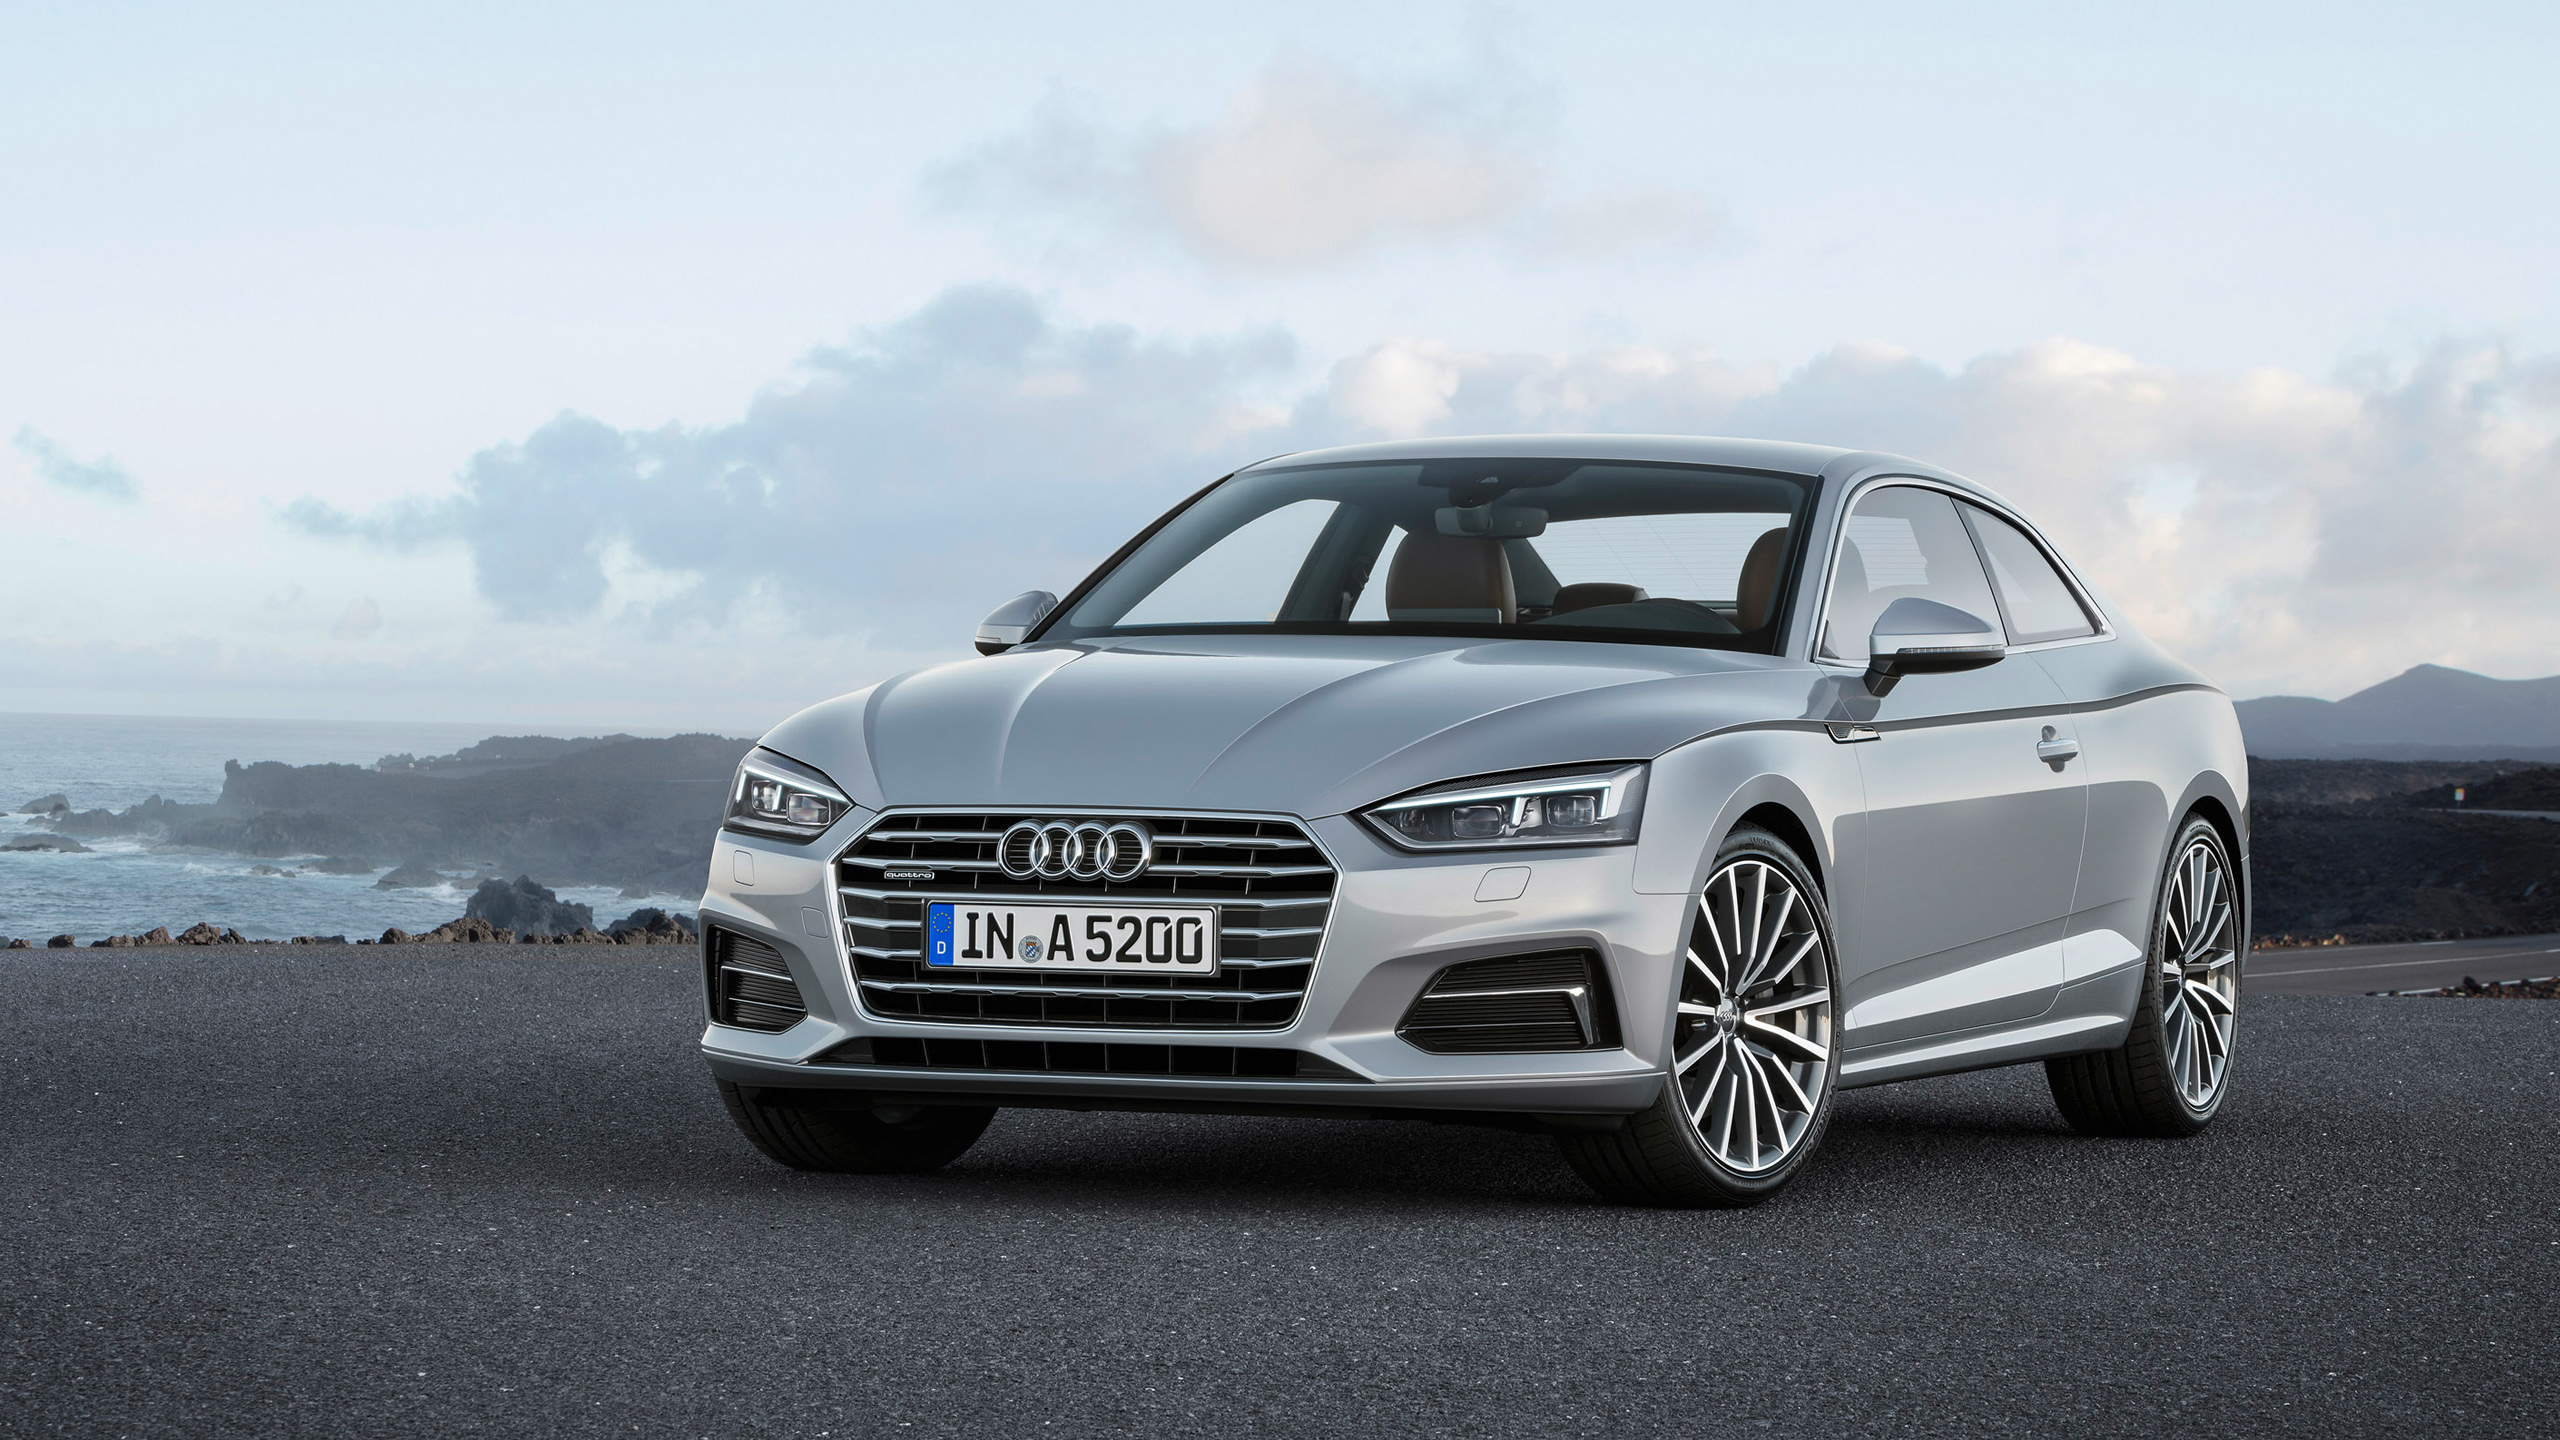 2560x1440 - Audi A5 Wallpapers 17